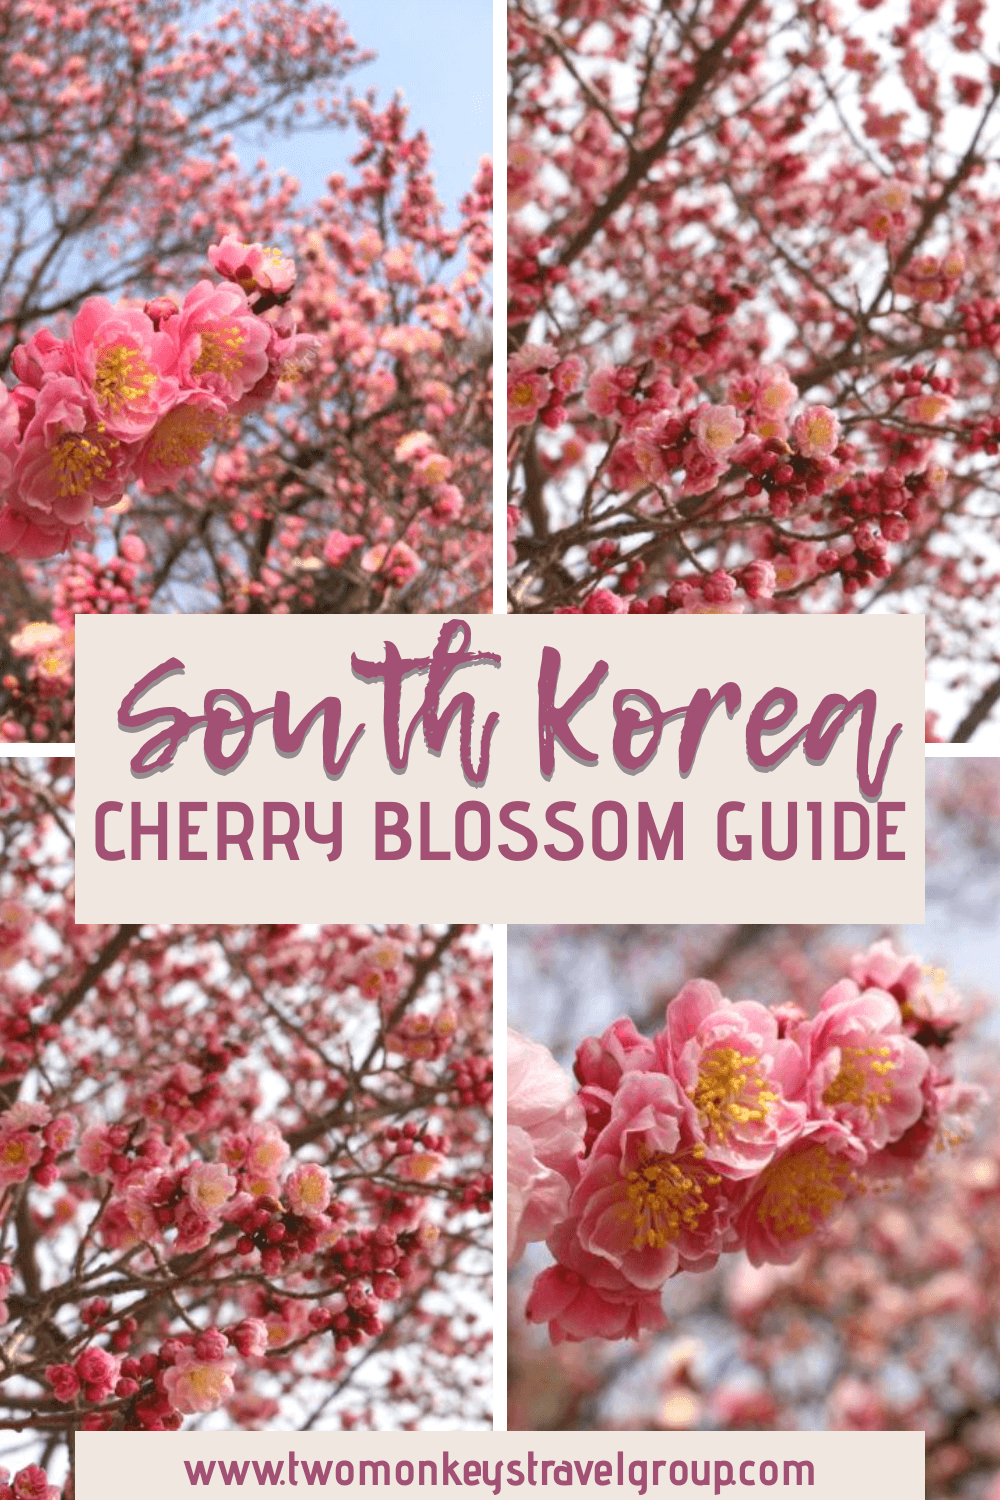 South Korea Cherry Blossom Guide When to visit SoKor to see the Cherry Blossom